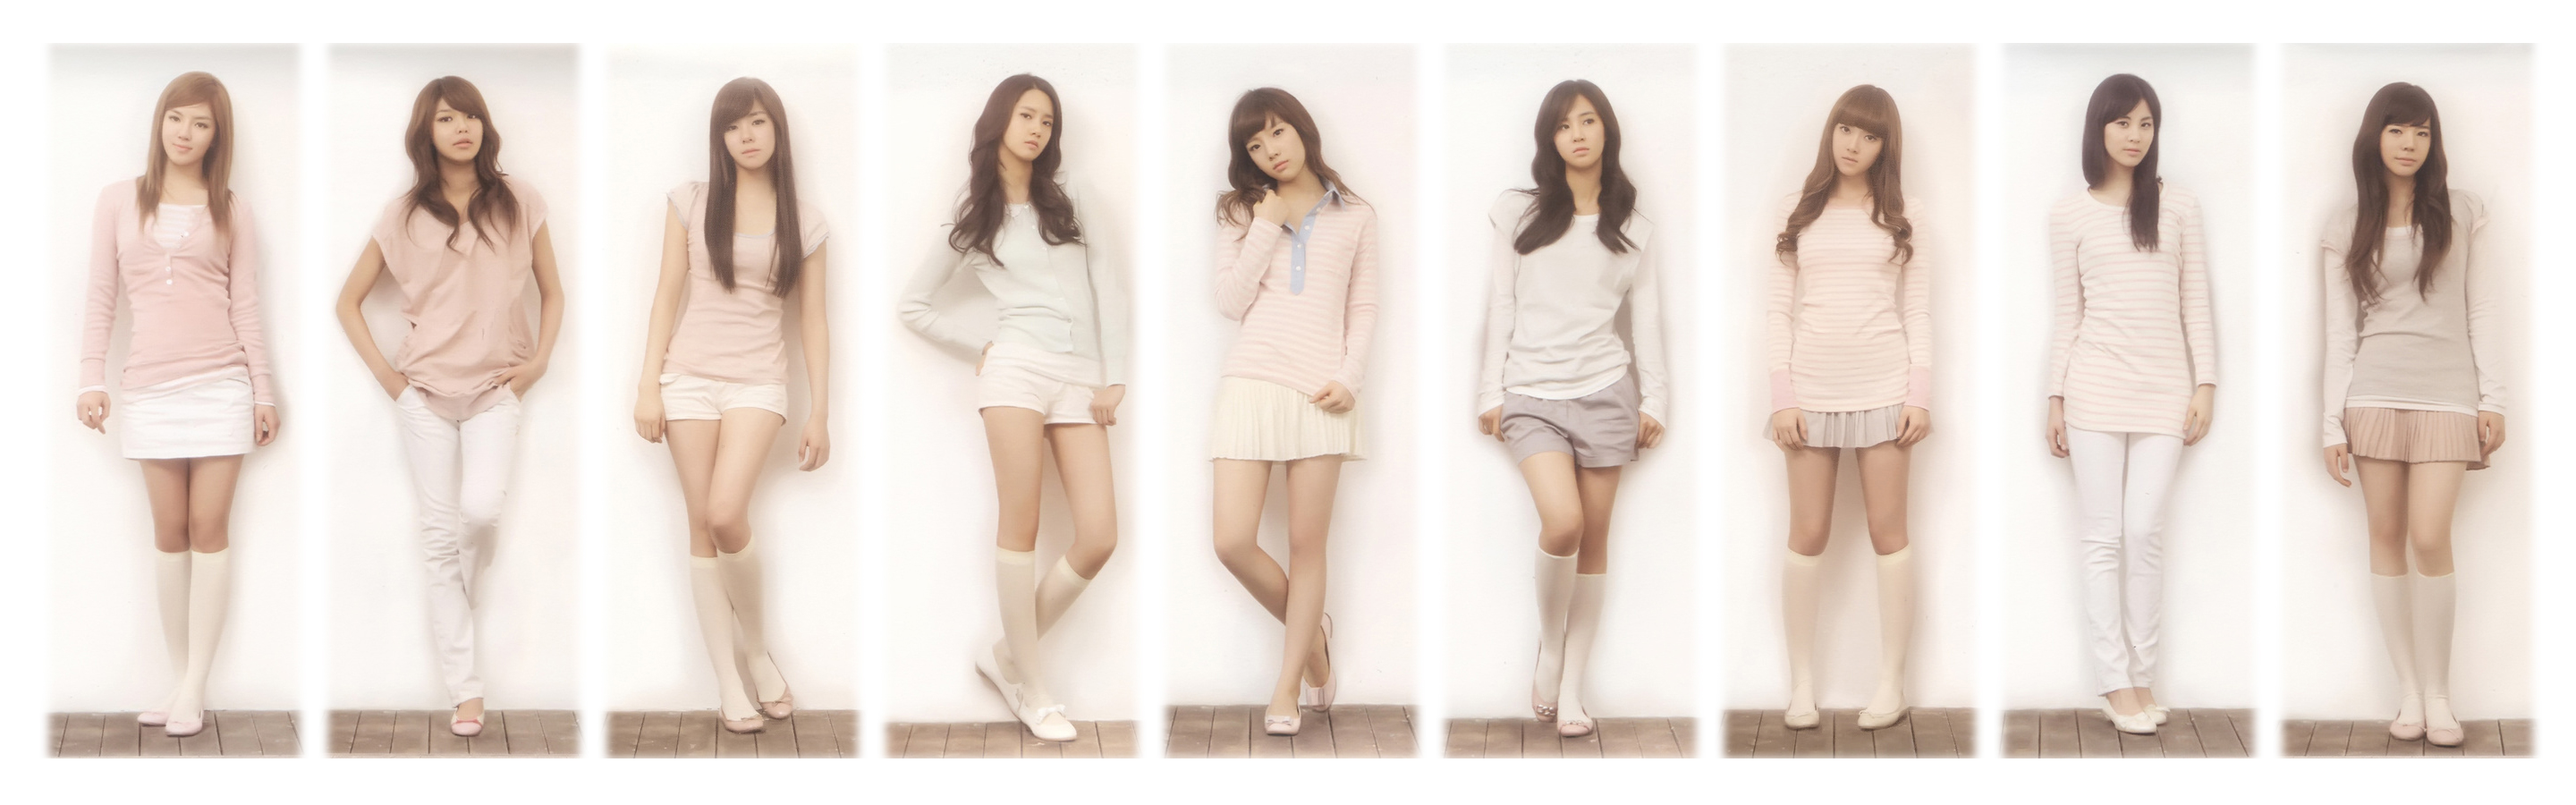 wallpaper girls triple monitor - photo #48